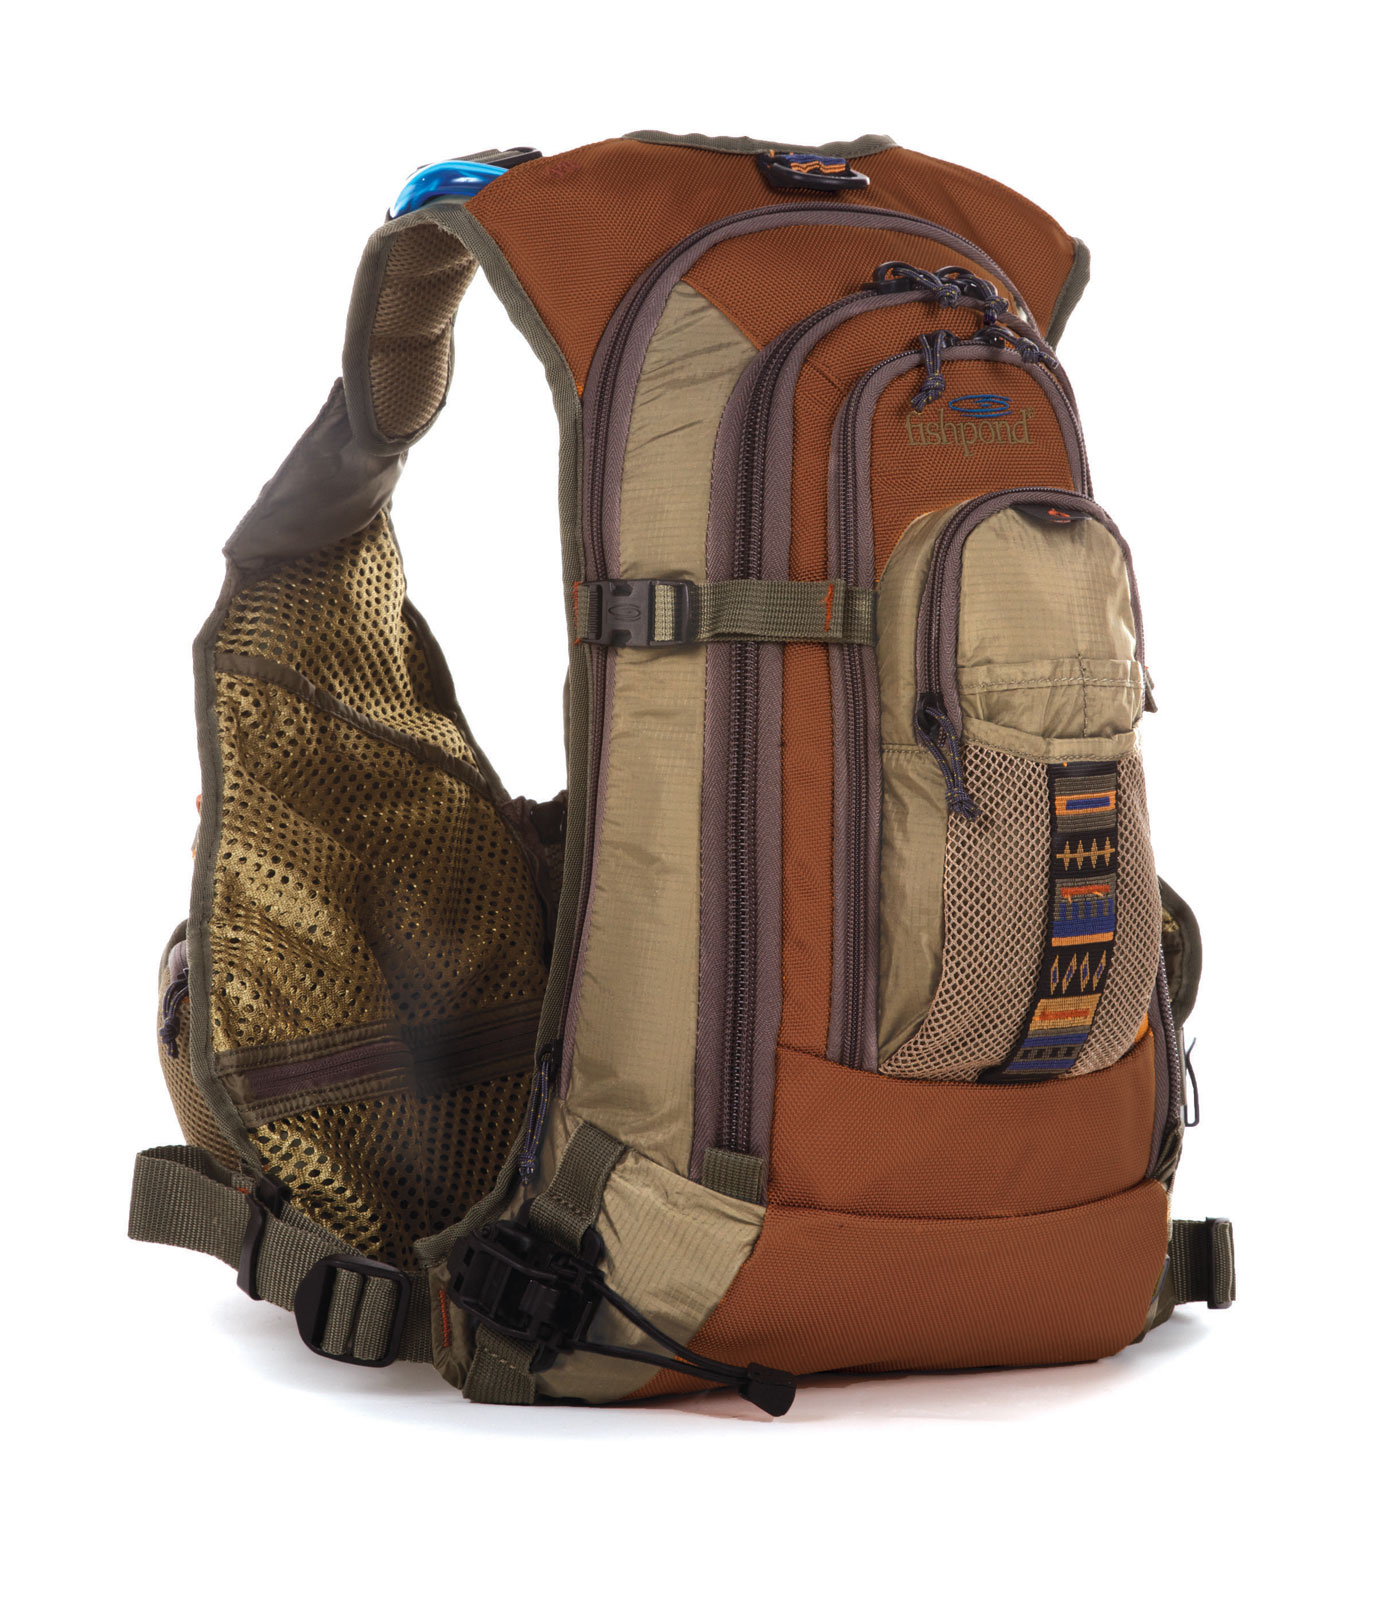 Fishpond wasatch tech pack fly fishing vests ebay for Fishpond fly fishing